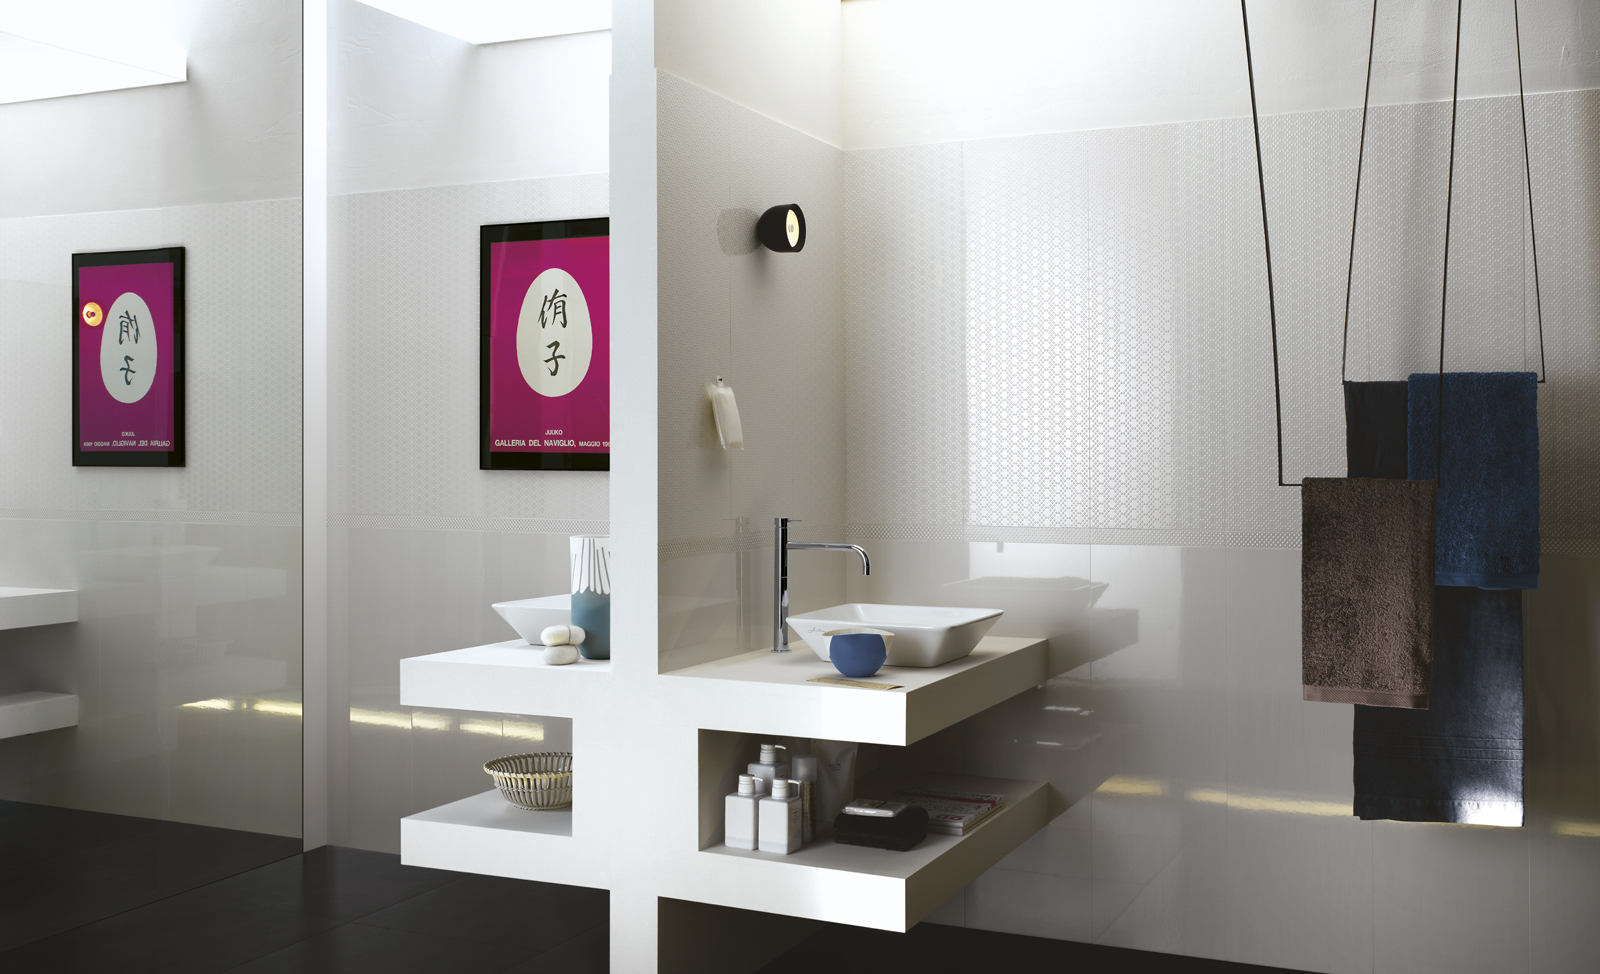 Simple Bathroom Bathrooms Glossy Wall Bathroomideas Wall Tiles Forward Glossy